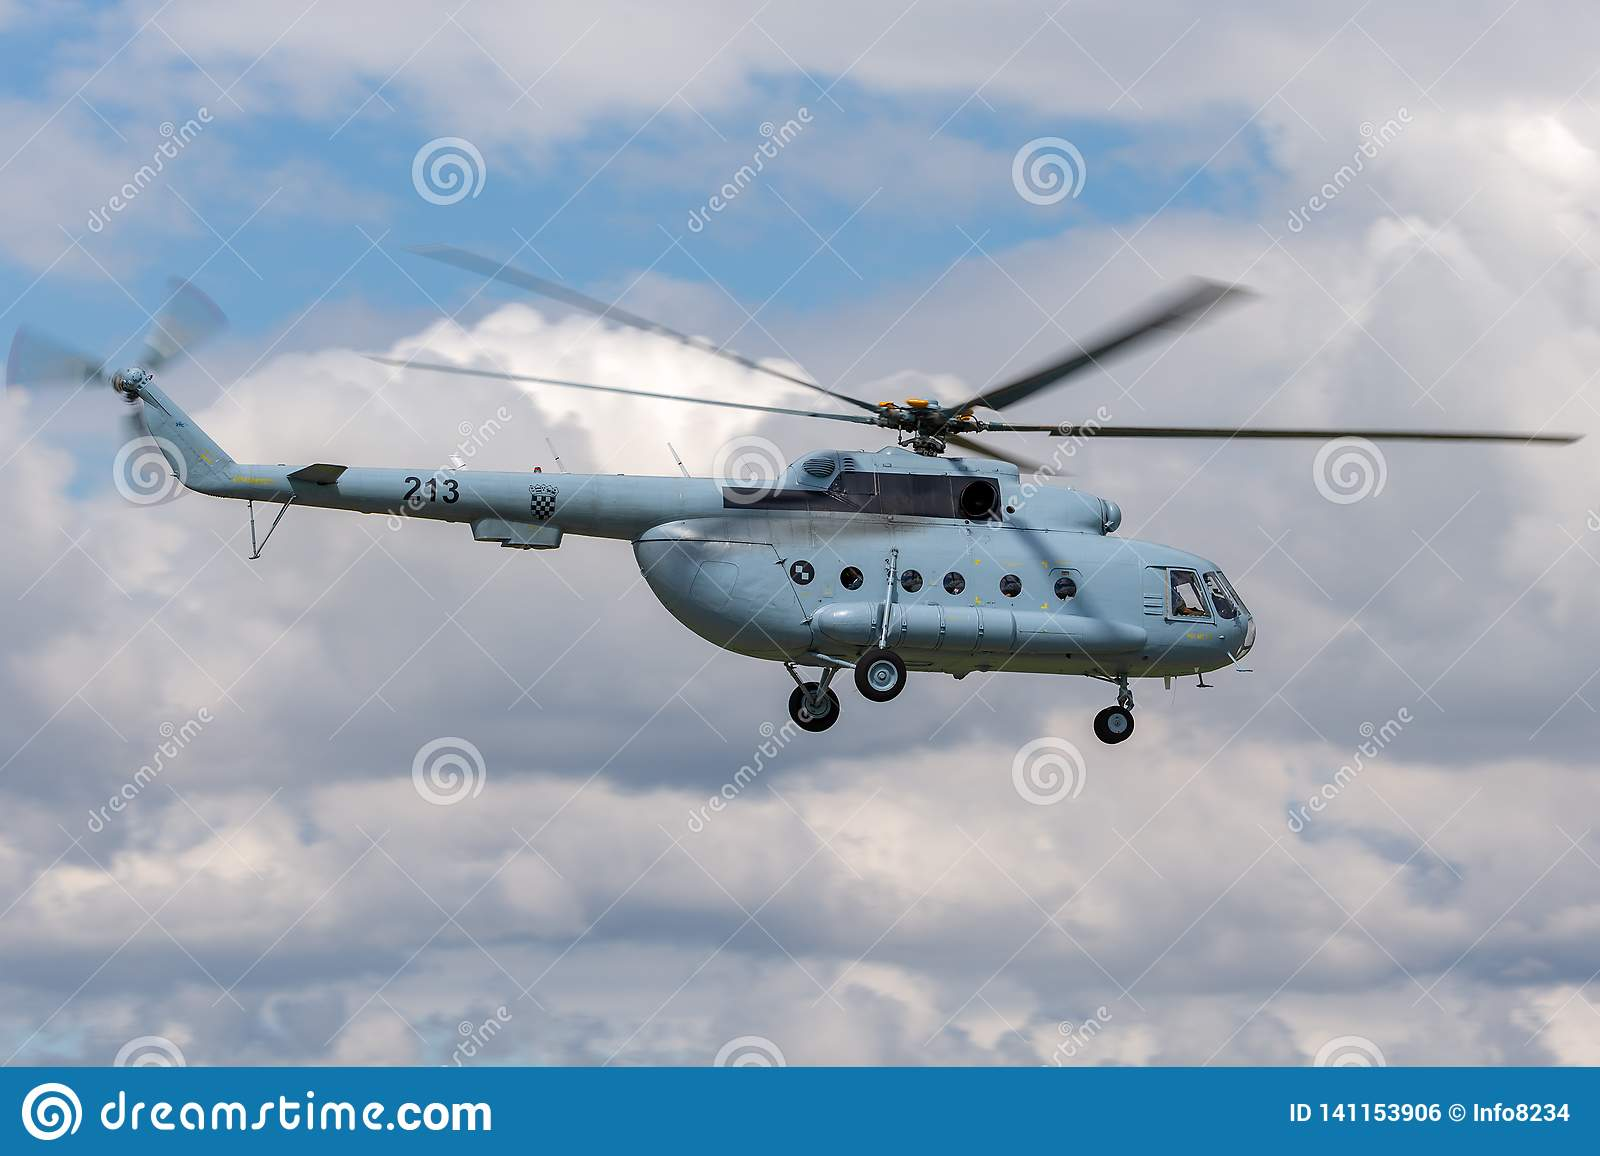 Croatian Air Force and Air Defence Mil Mi-8 Military helicopter